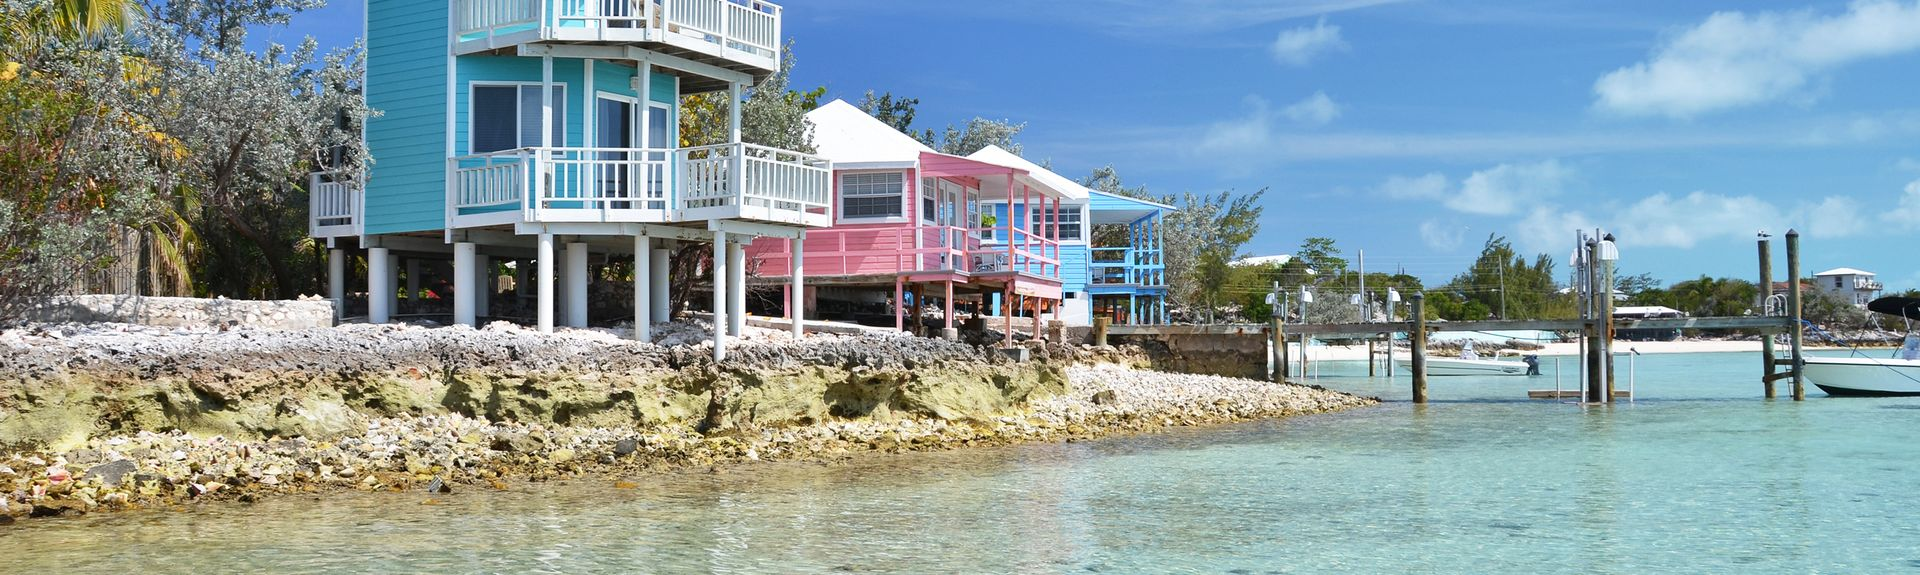 Vrbo | Staniel Cay, BS Vacation Rentals: house rentals & more